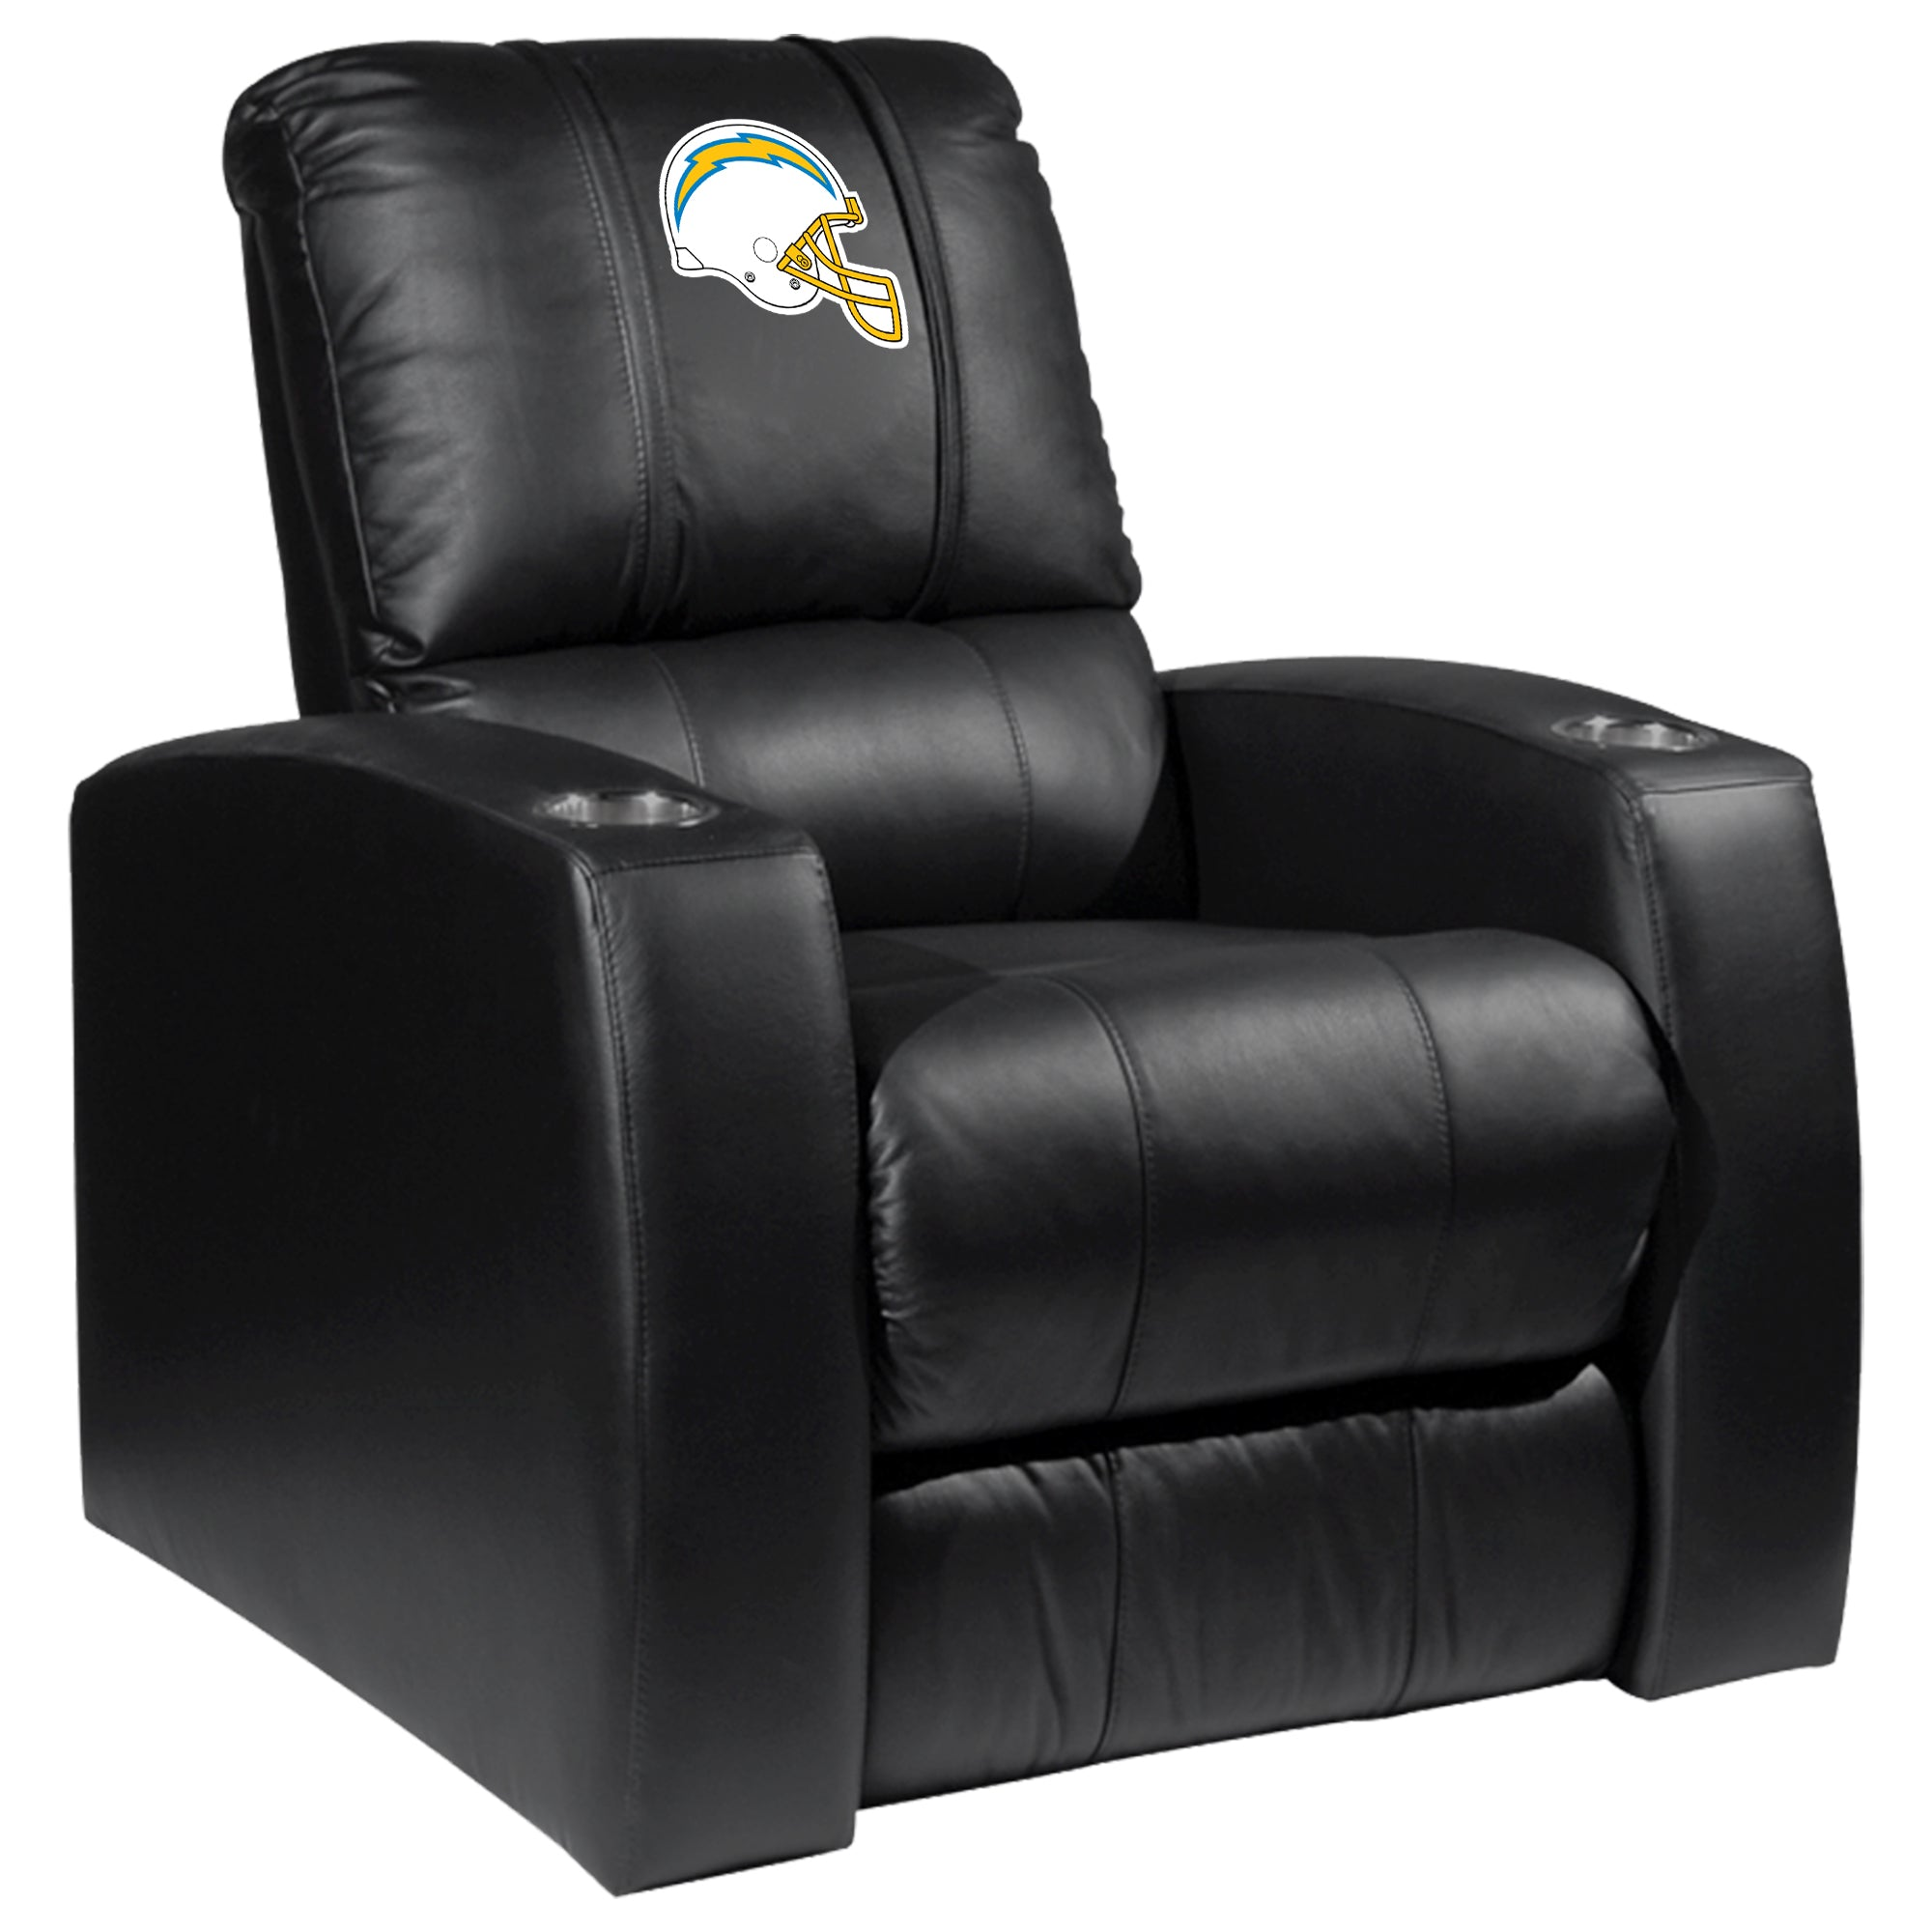 Relax Recliner with  Los Angeles Chargers Helmet Logo